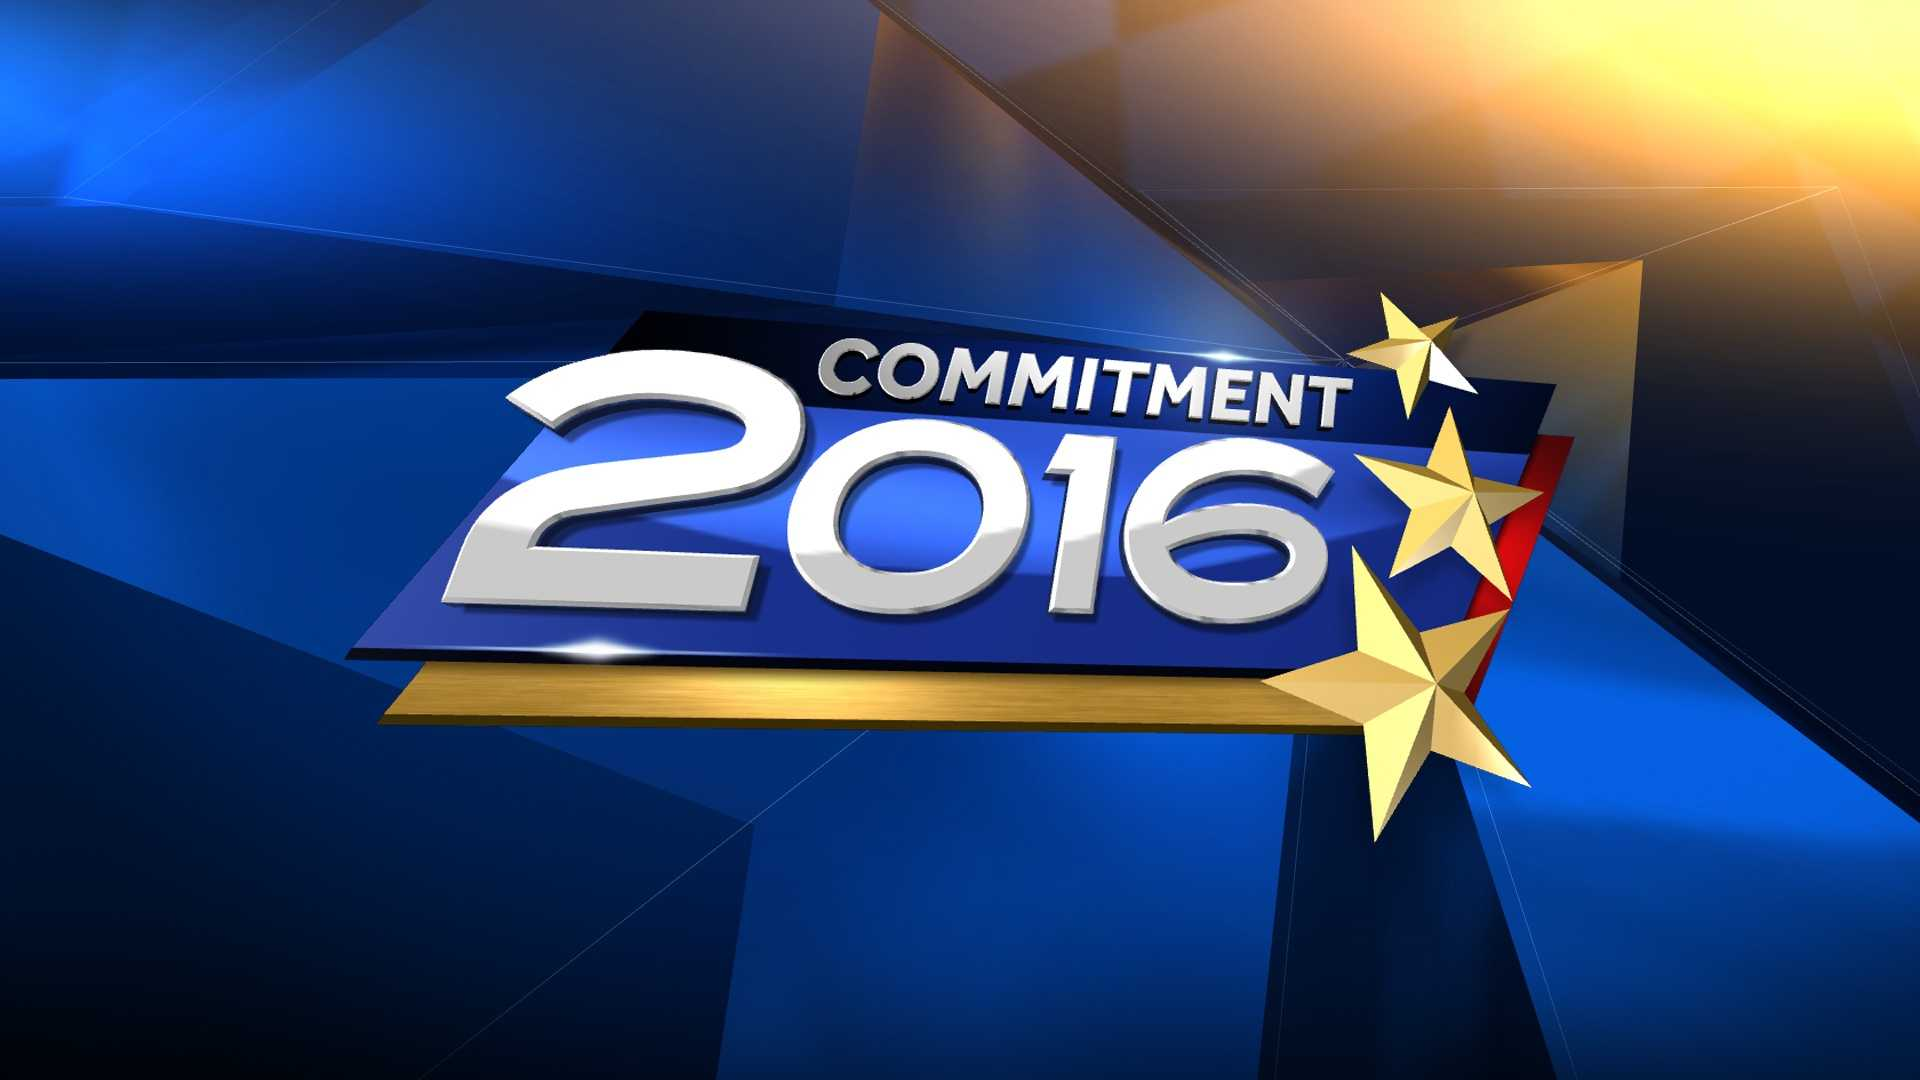 use this 2016 commitment 2016 logo